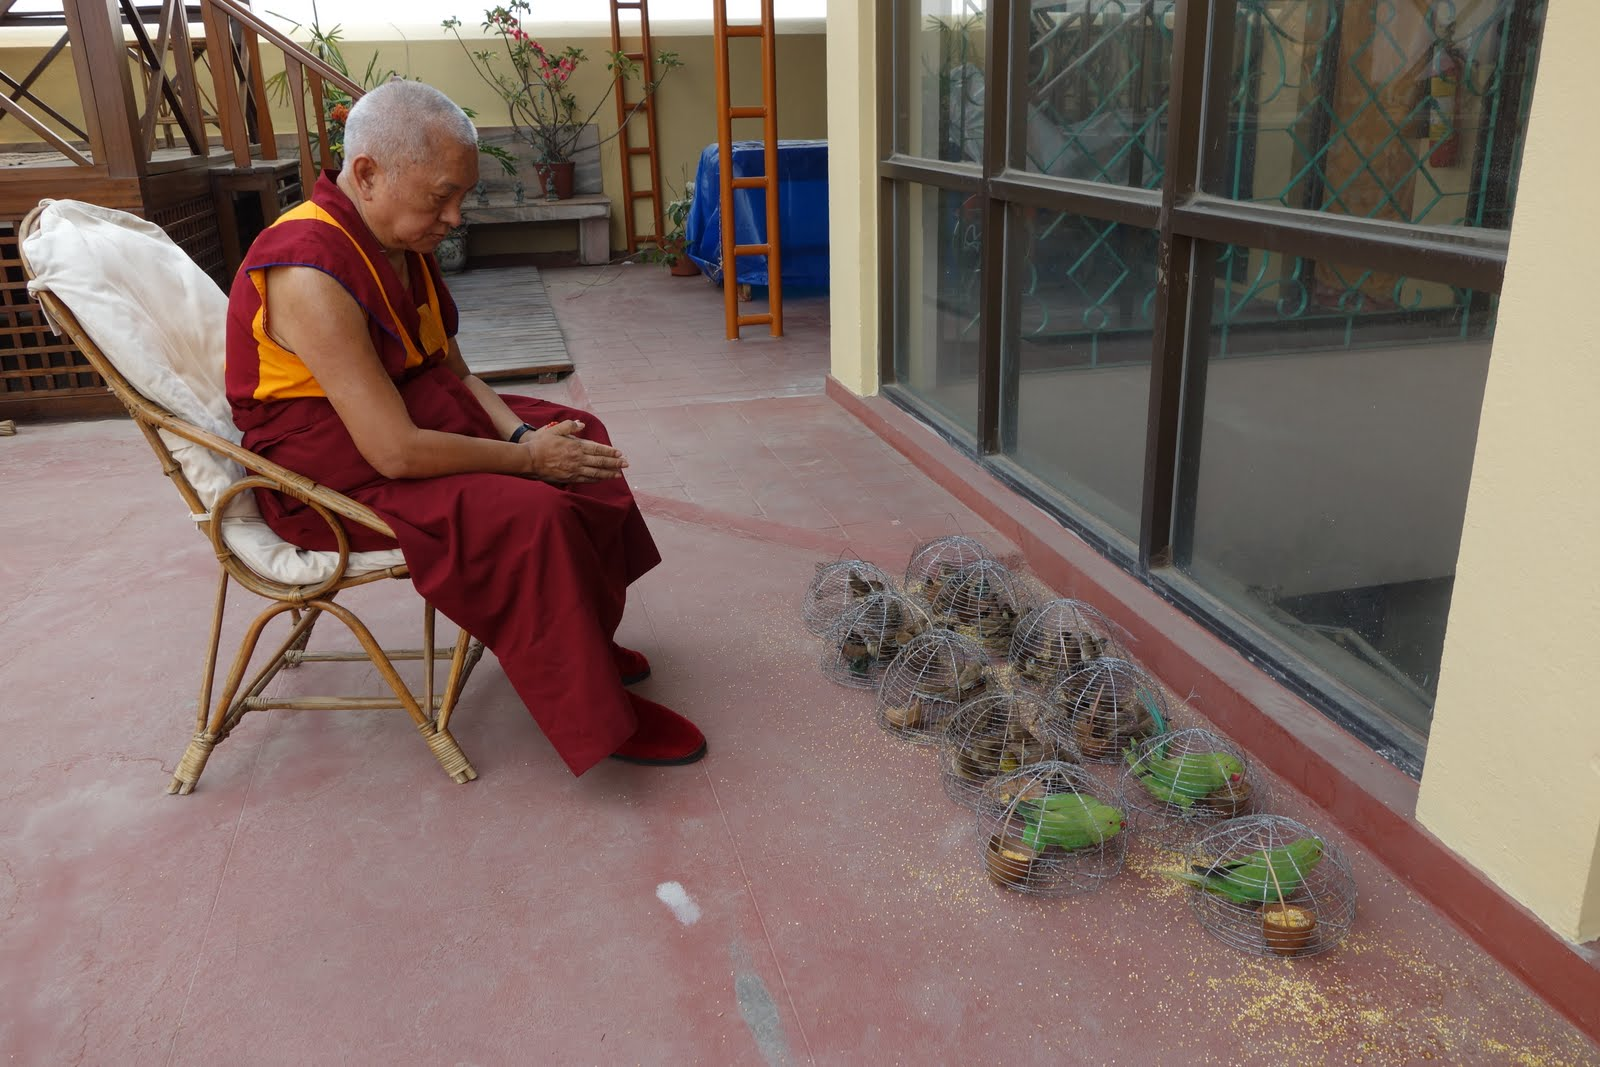 This morning at the stupa Rinpoche bought these birds in order to release them. Here he is reciting many mantras before releasing. It is 4-15pm still no lunch, still blessing the birds. Photo by Ven. Roger Kunsang.